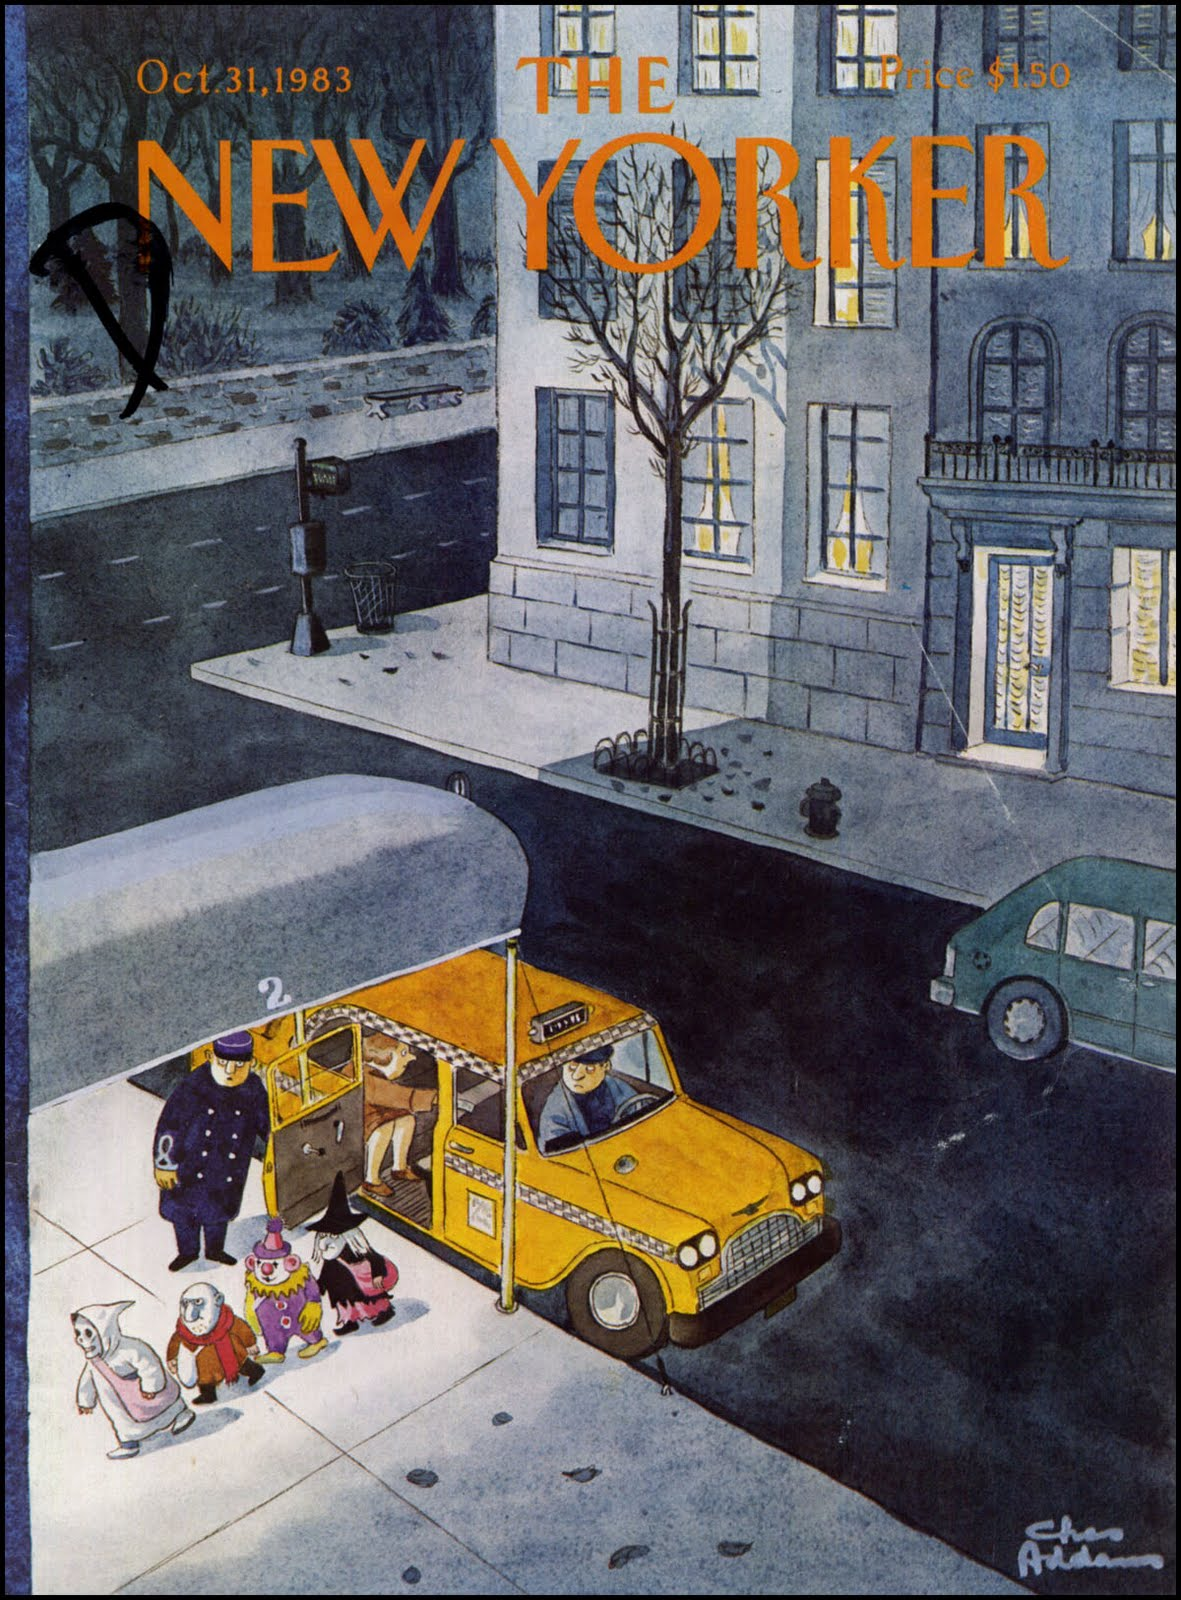 Charles Addams New Yorker, Oct. 31, 1983